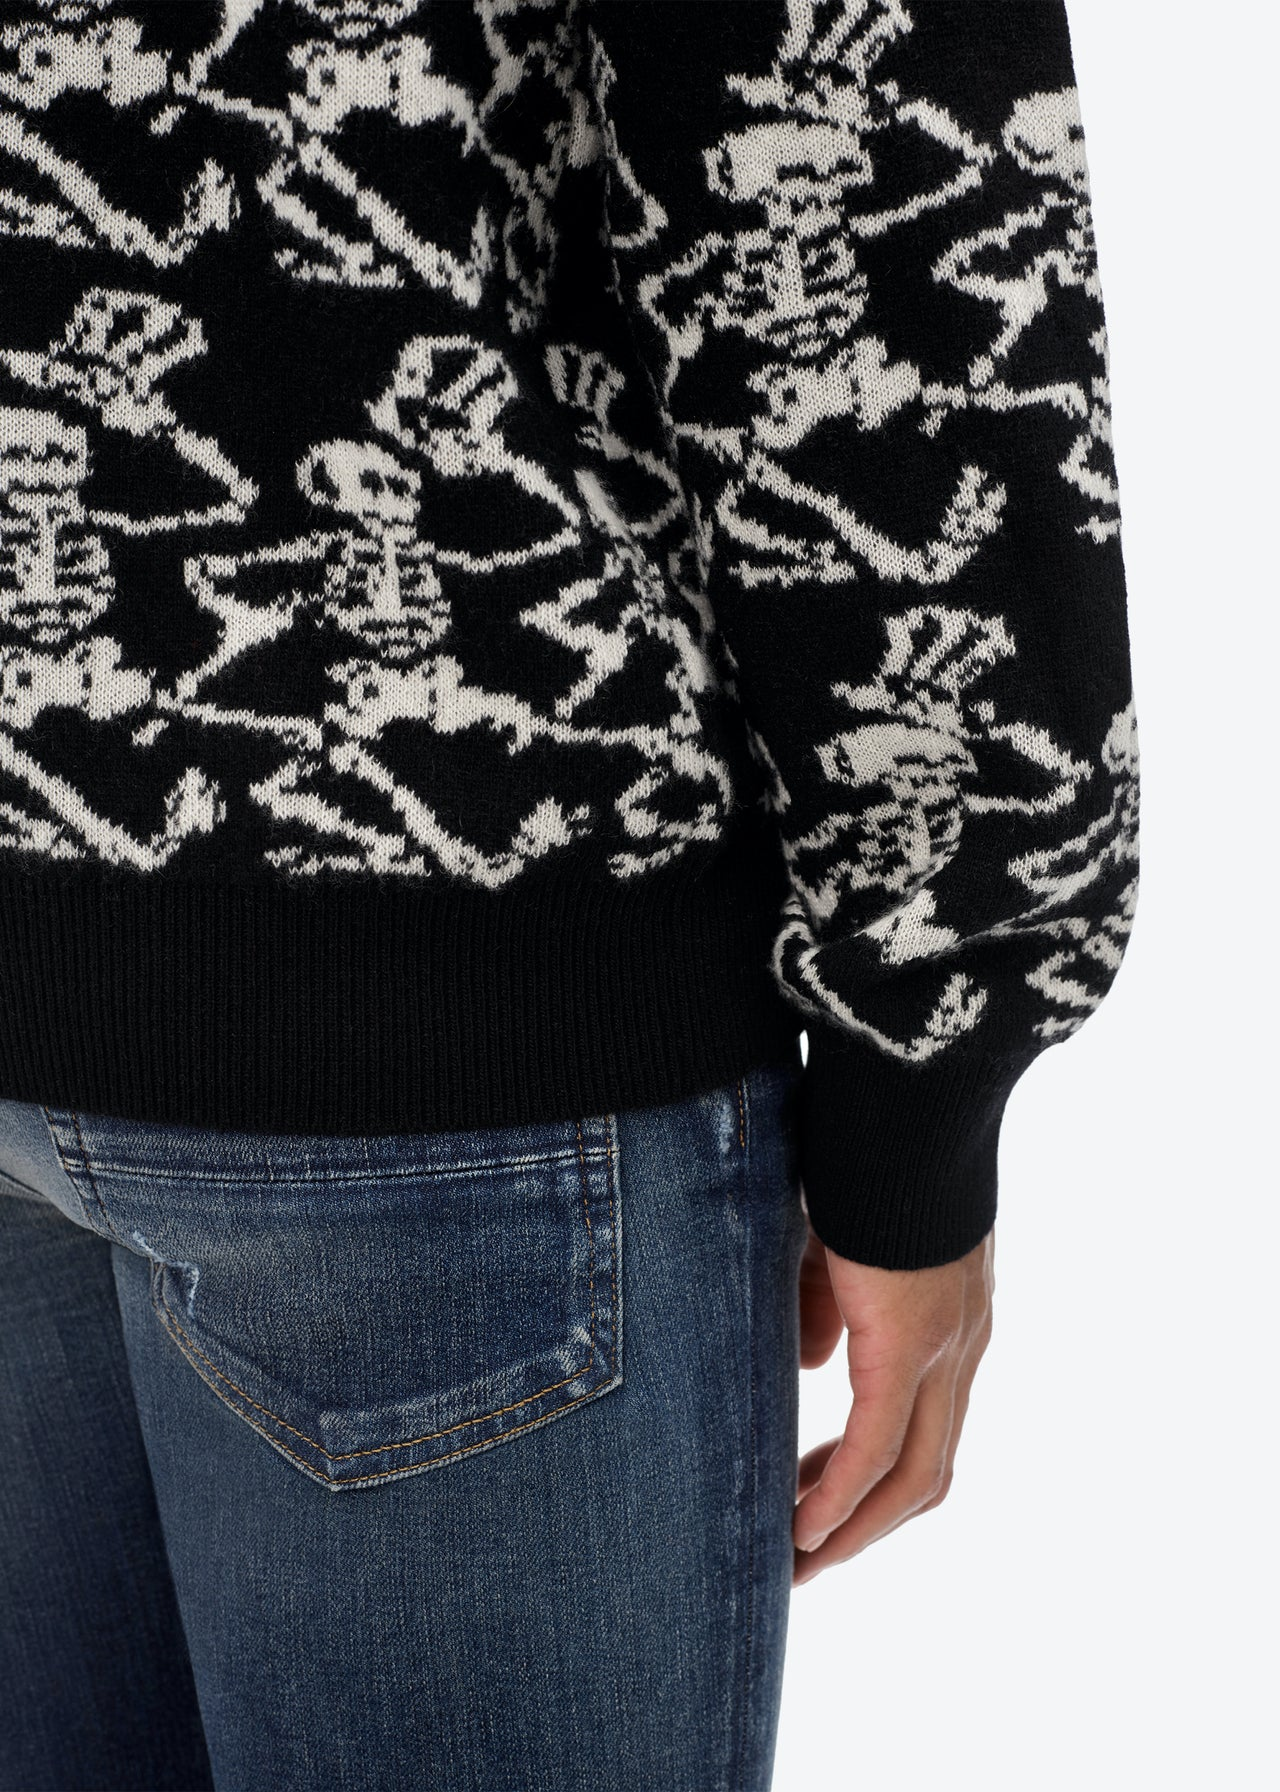 GRATEFUL DEAD SKELETON SWEATER - Black / White